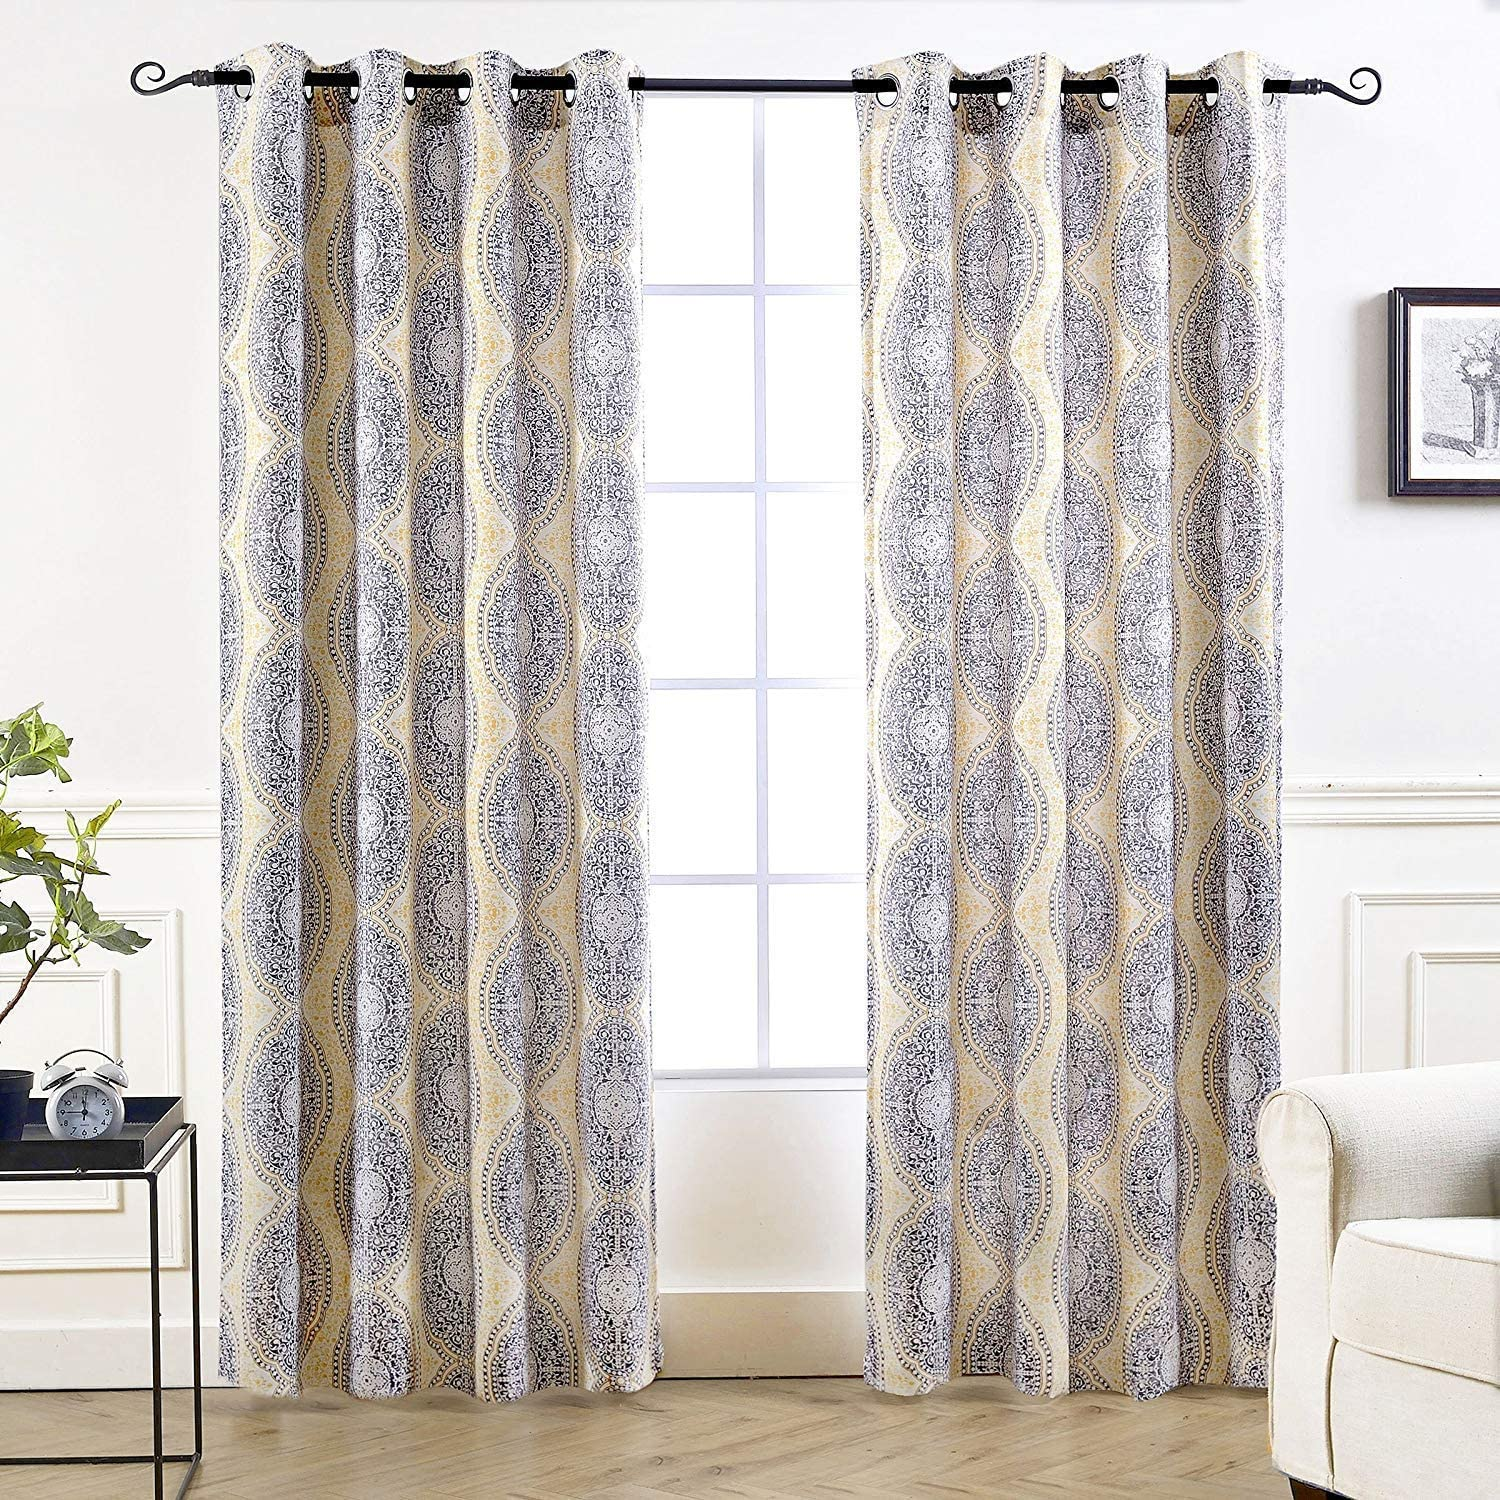 DriftAway Adrianne Damask Floral Pattern Thermal Room Darkening Grommet Unlined Window Curtains Set of 2 Panels Each 52 Inch by 84 Inch Yellow and Gray